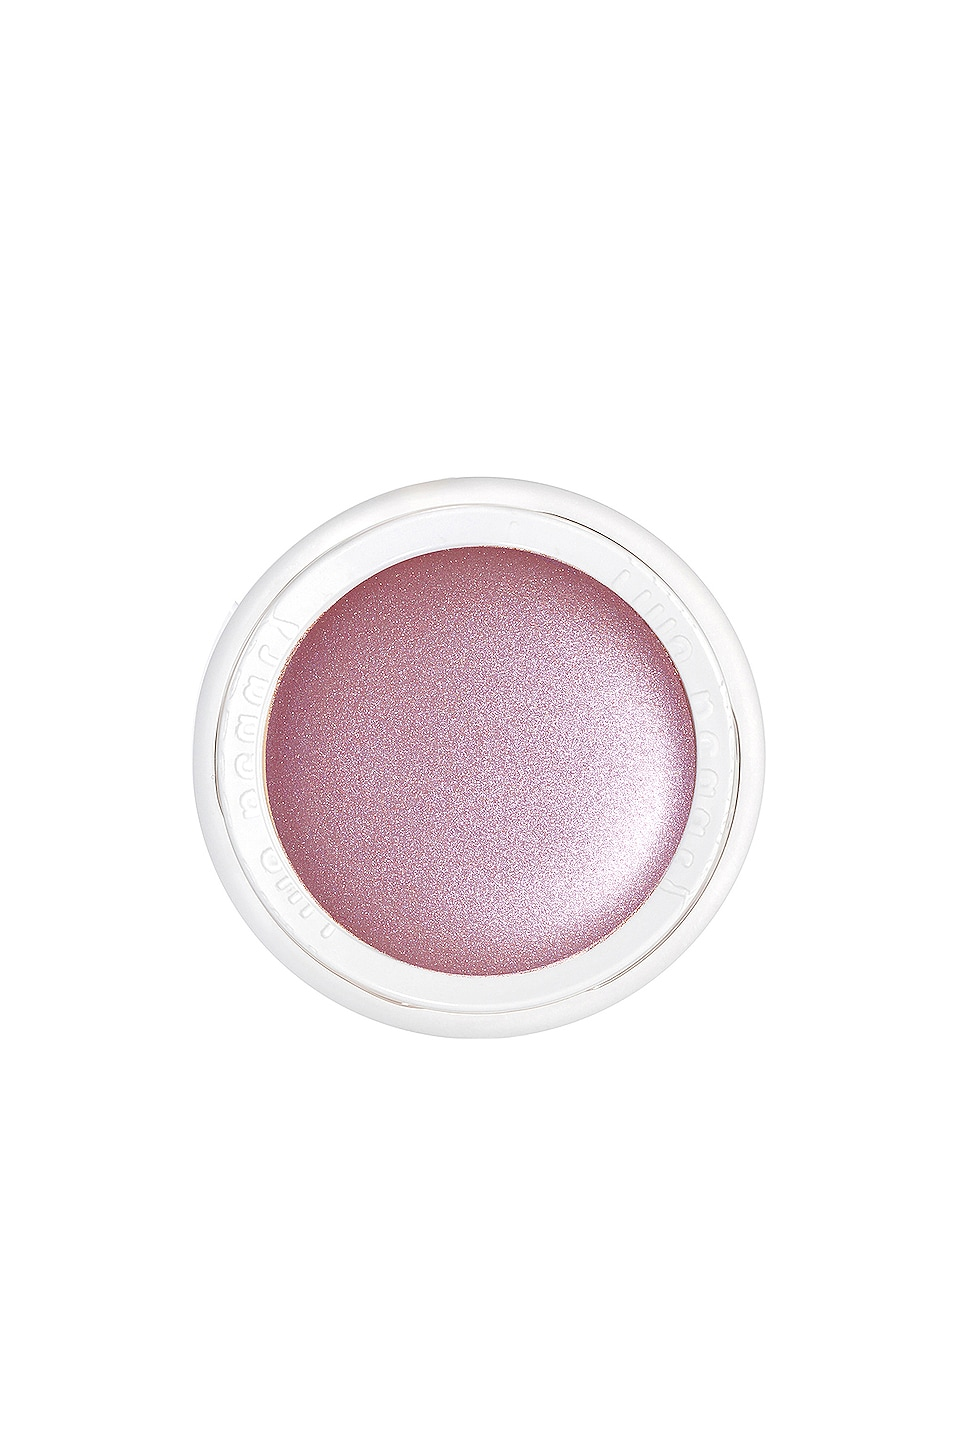 RMS Beauty ROTULADOR AMETHYST ROSE